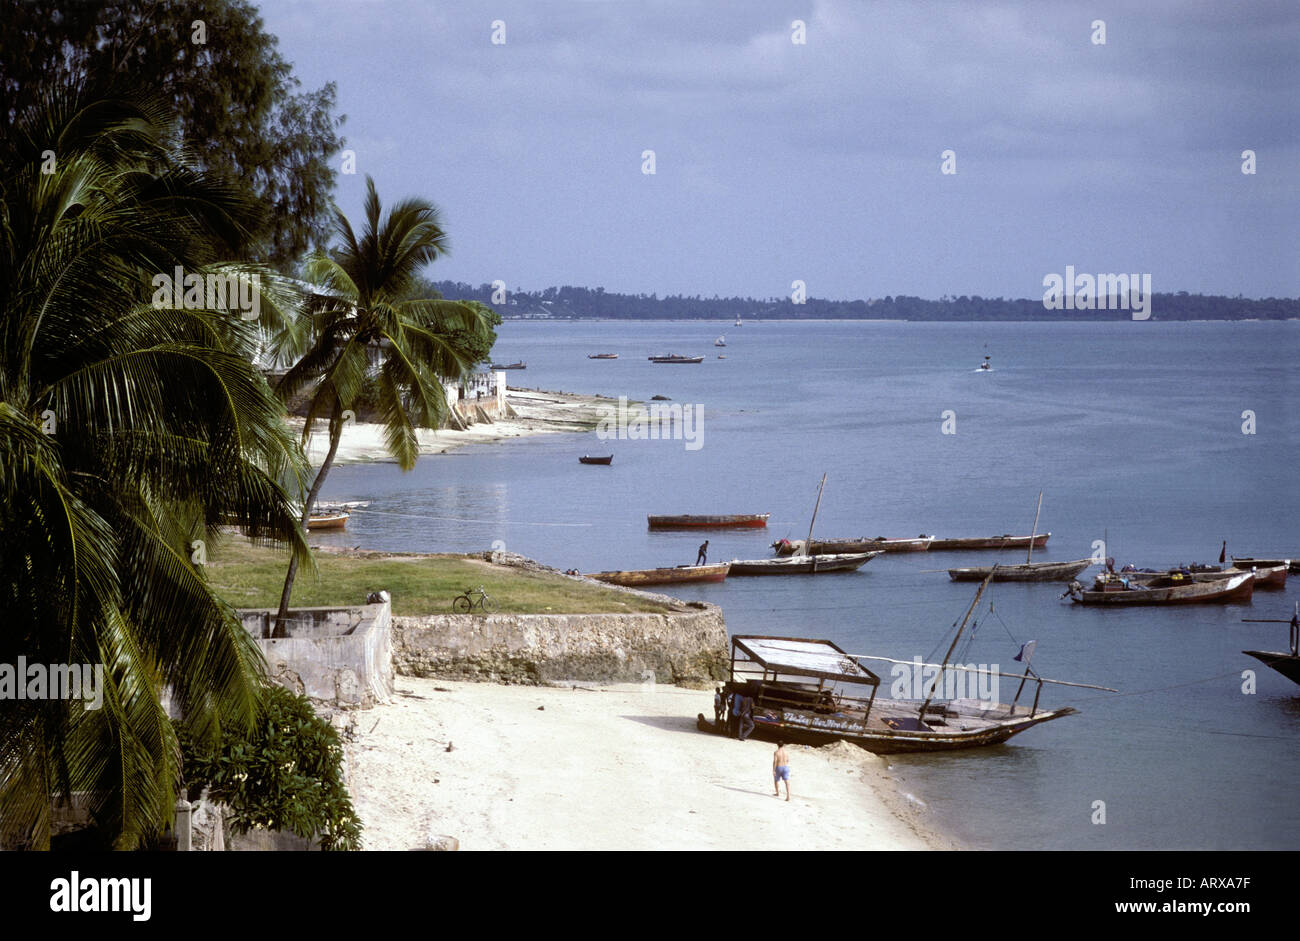 A sandy beach near the old stone town Zanzibar Tanzania East Africa - Stock Image